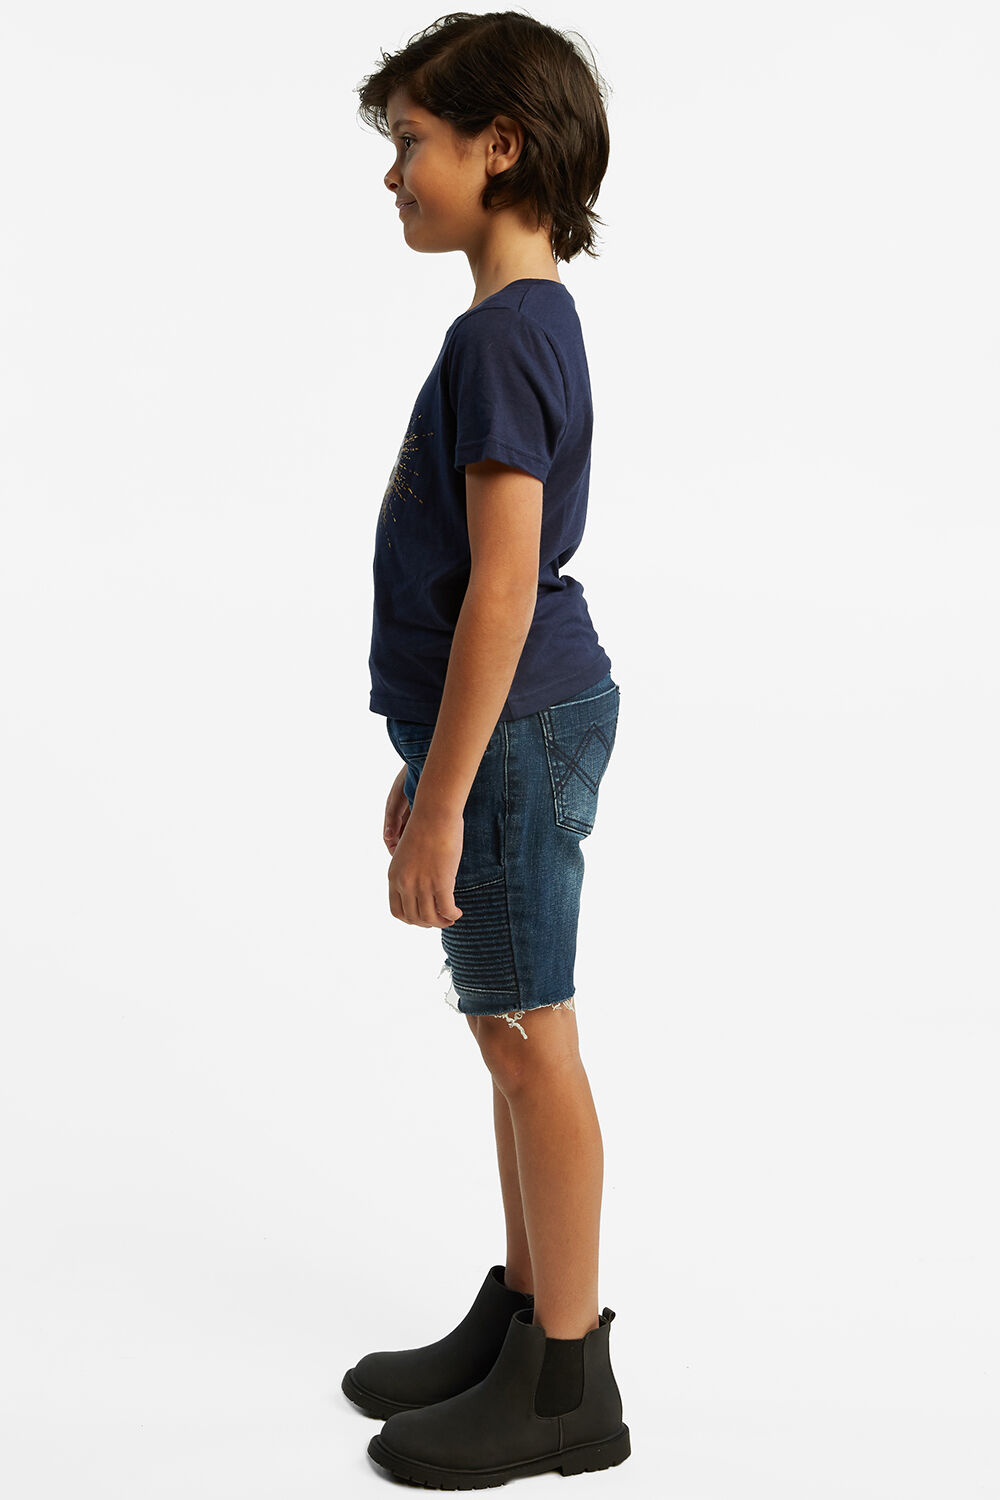 BIKER DENIM SHORT in colour CITADEL